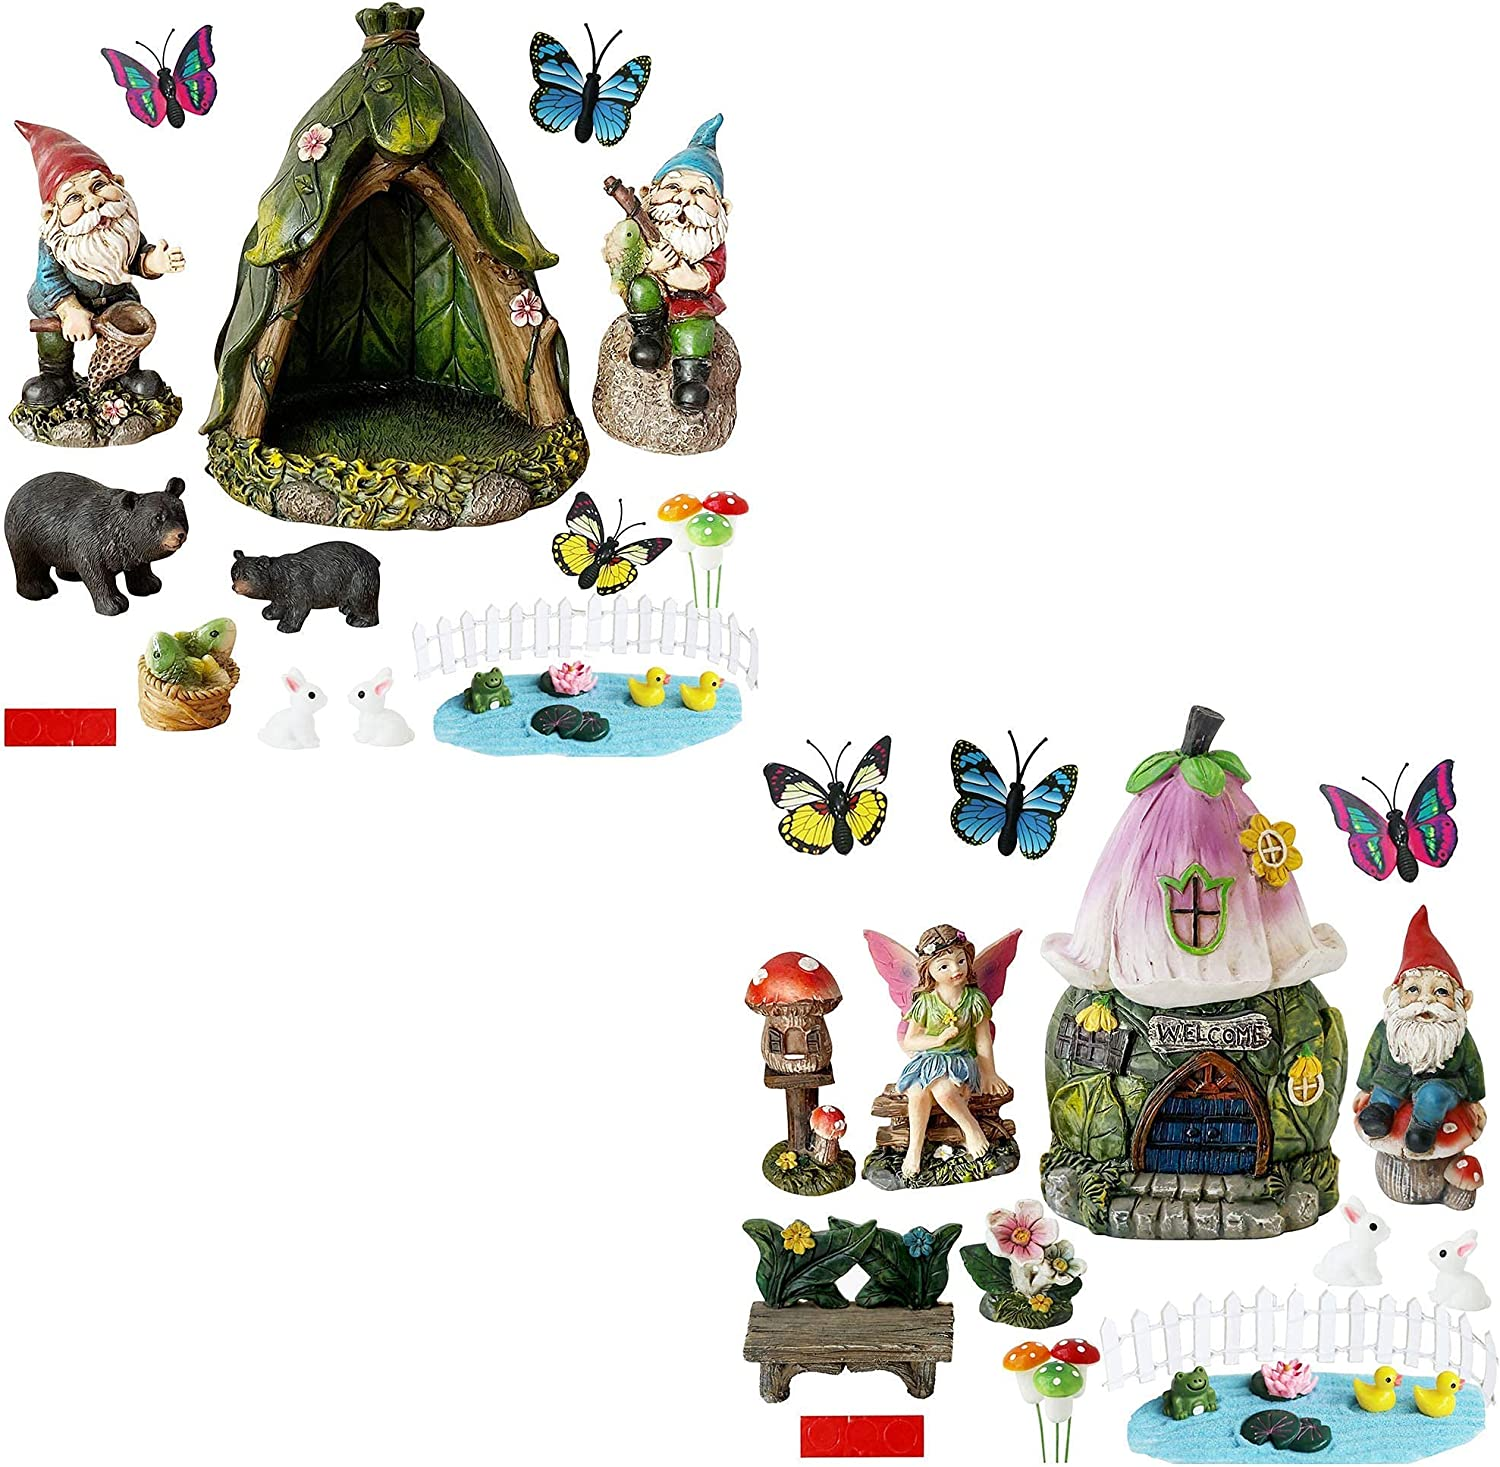 Miniature Fairy Garden Gnomes Decoration - 46PCS Small Figurines Statue Accessories Gnome House for Outdoor Indoor Home Yard Patio Decor Ornaments Kit Fence Mushroom